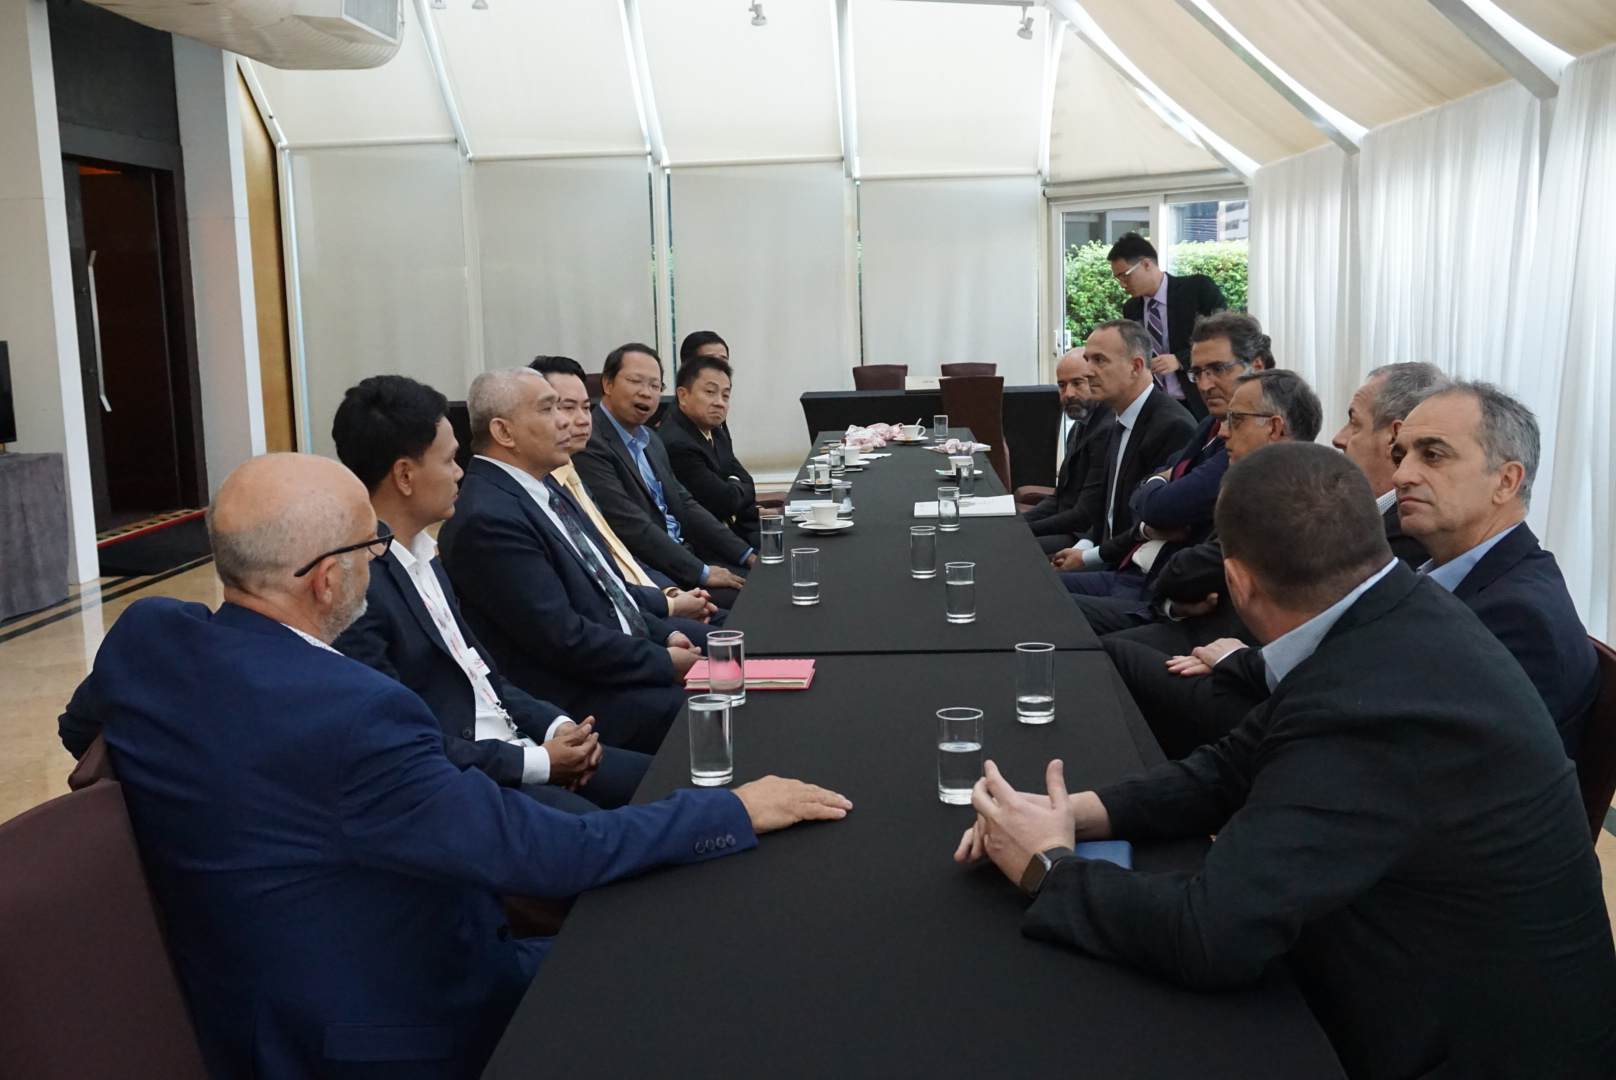 ITALIAN TEXTILE MACHINERY: INSTITUTIONAL AND TRADE MISSION IN THAILAND